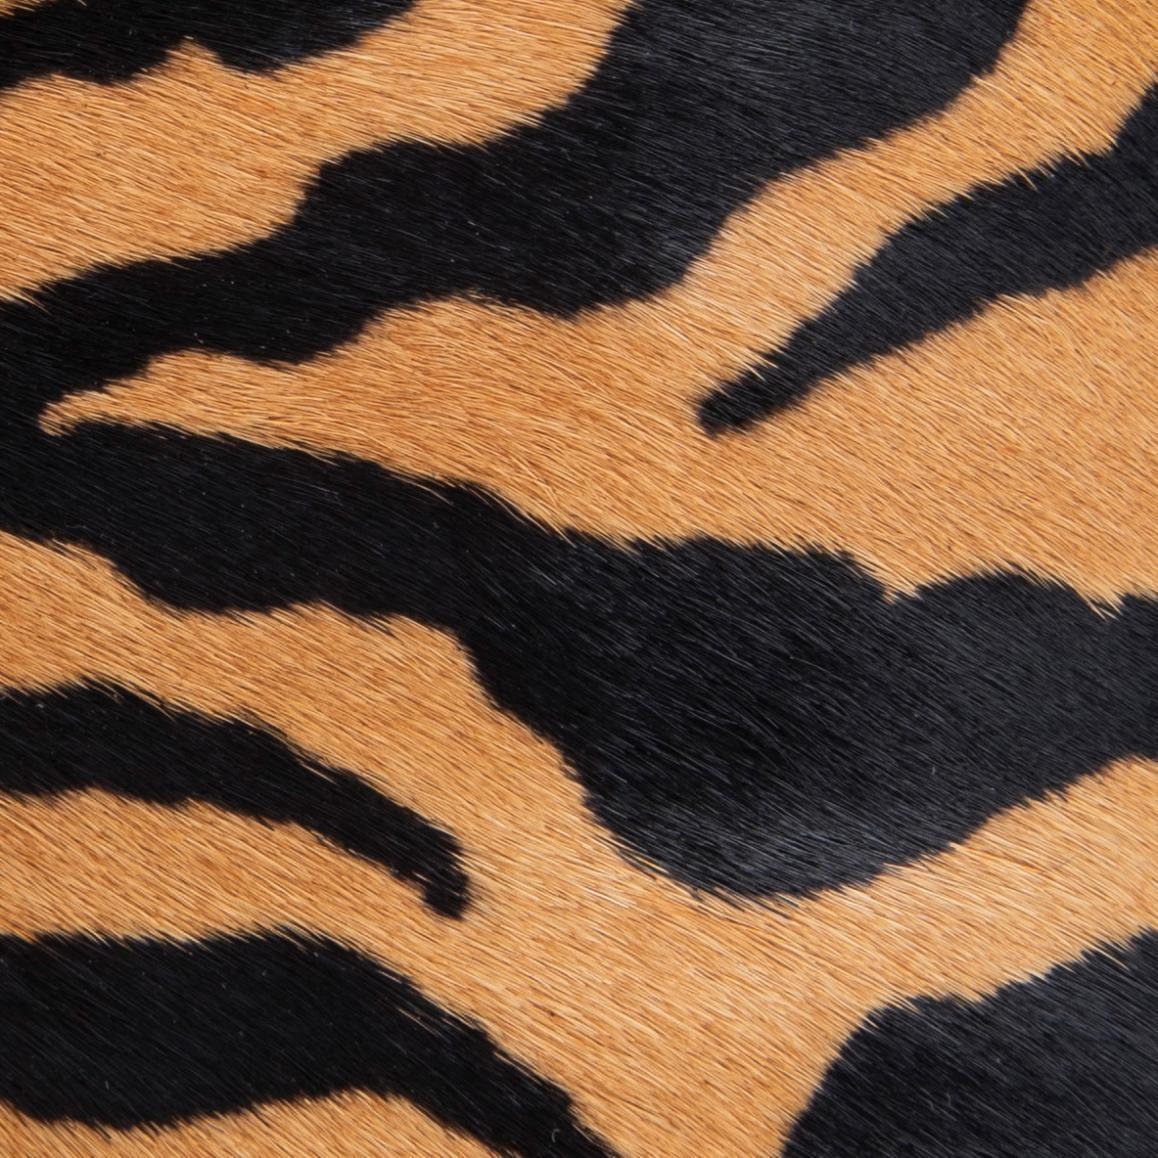 Bougie Tiger-Print Pony Hair Leather 13